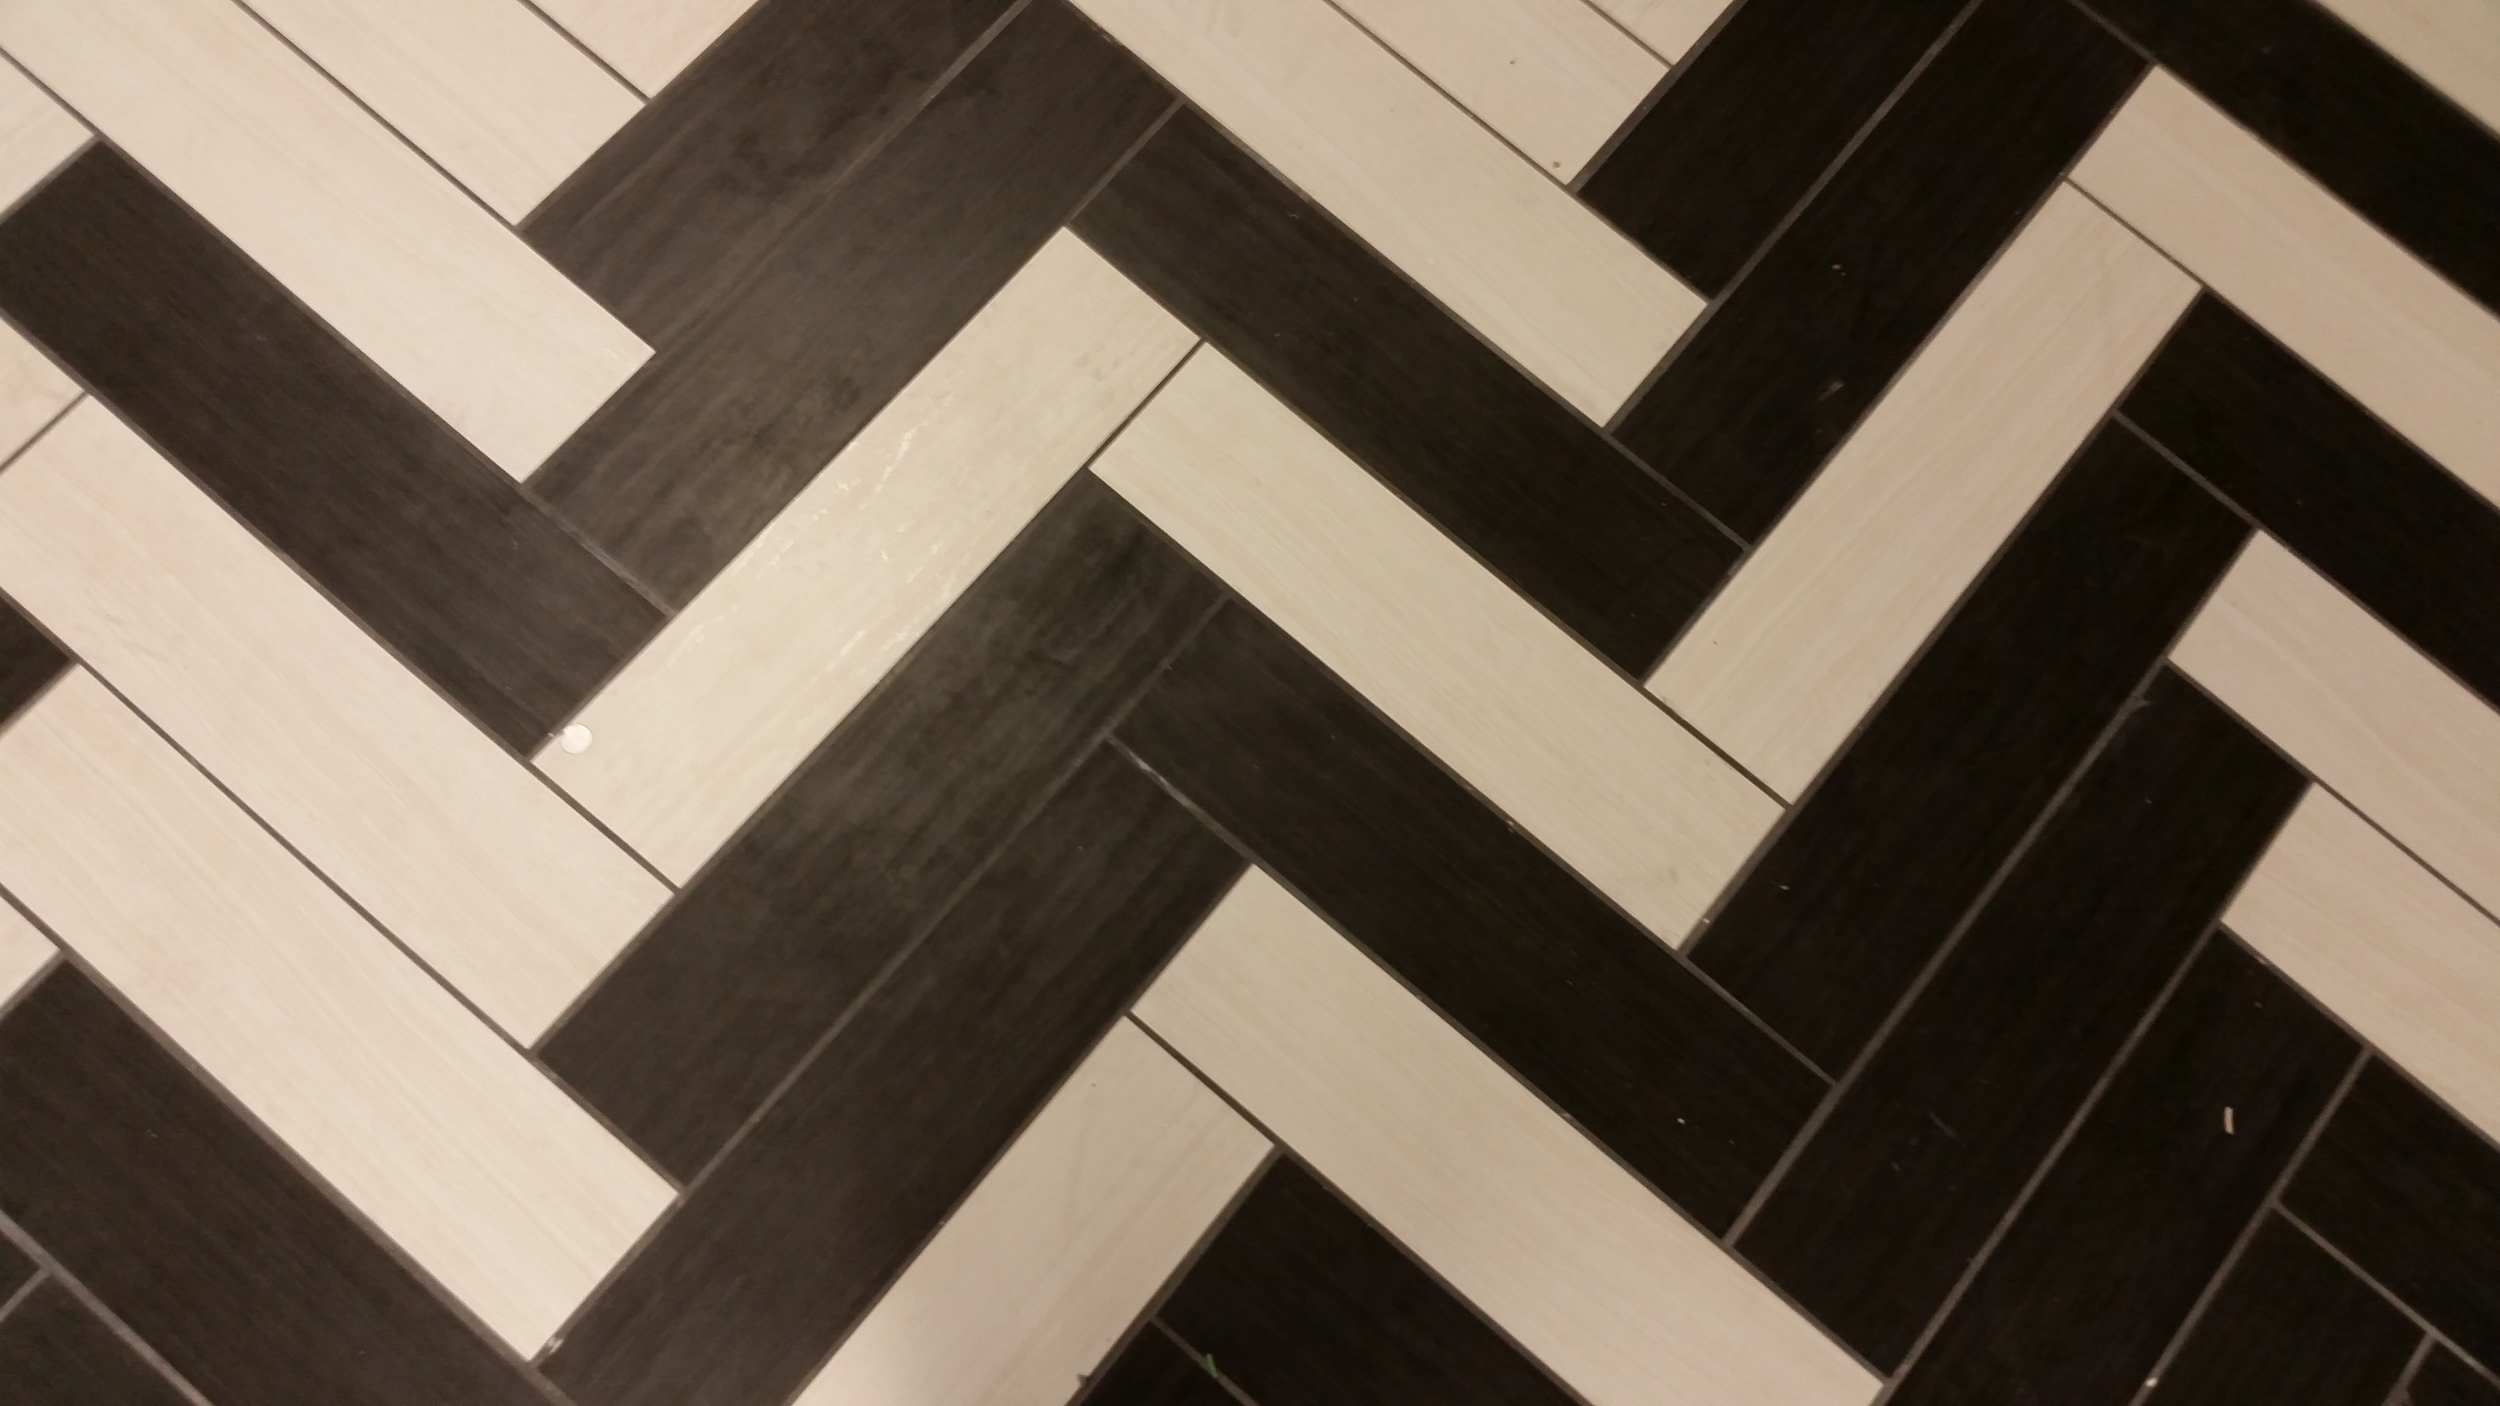 The white tile fades to dark in a graphic pattern.